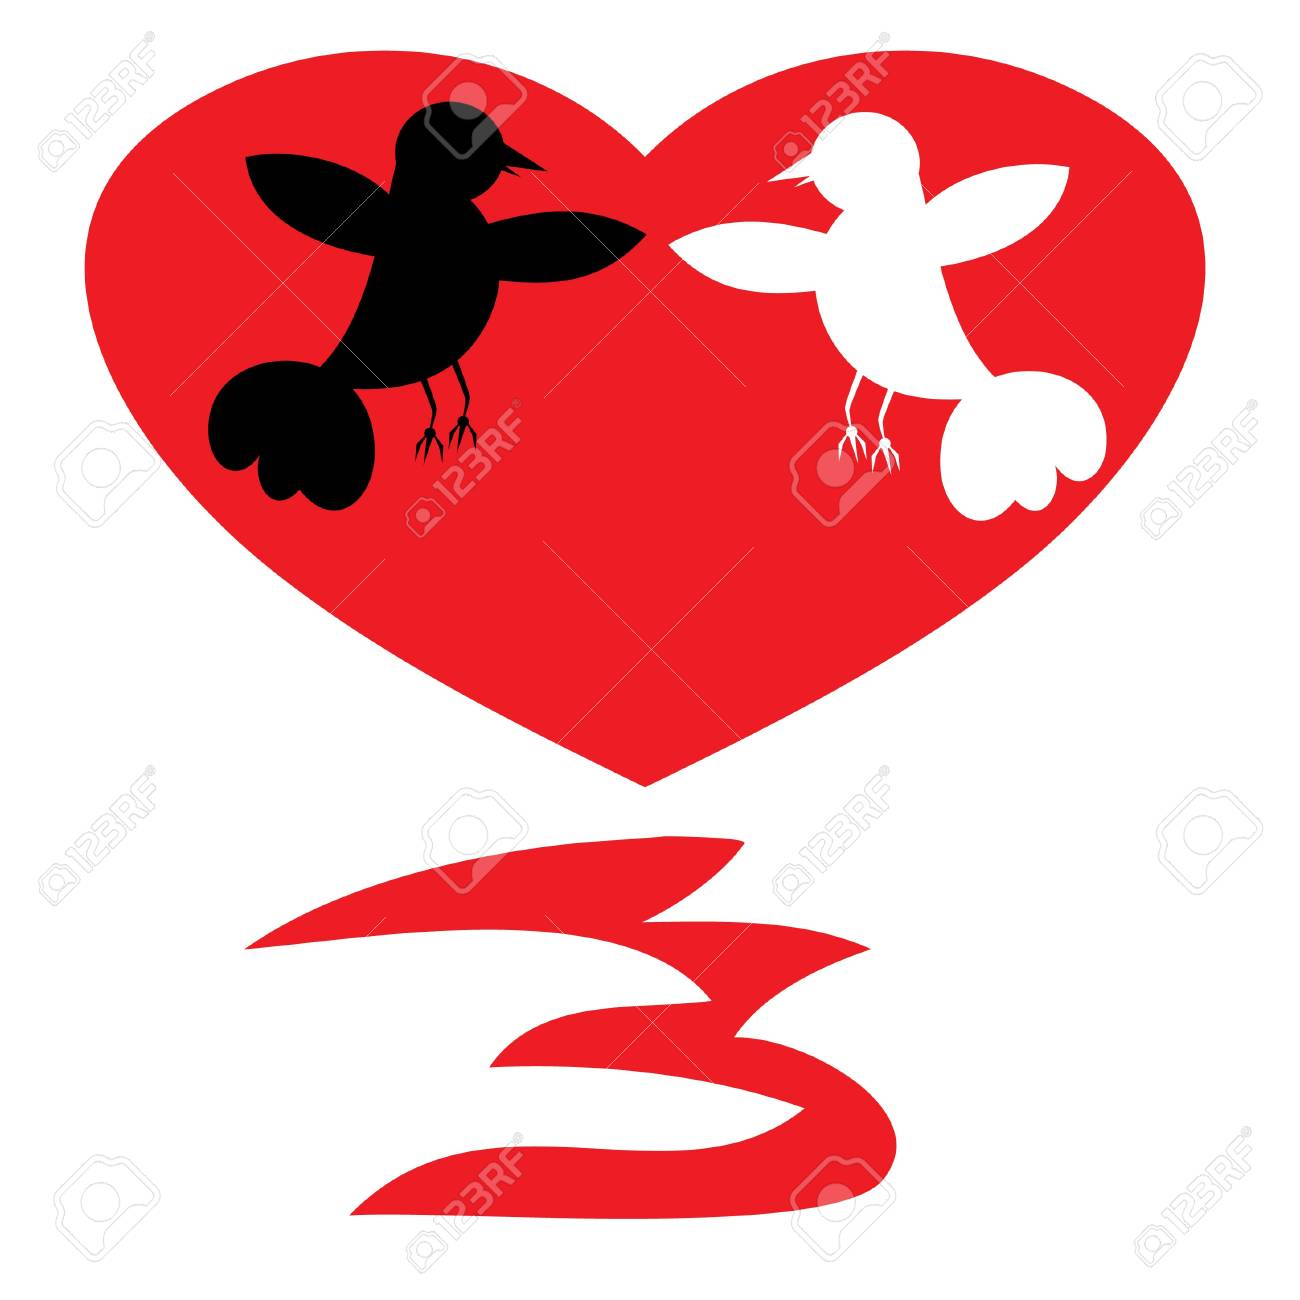 Silhouettes of two enamoured birds. Stock Vector - 11102167